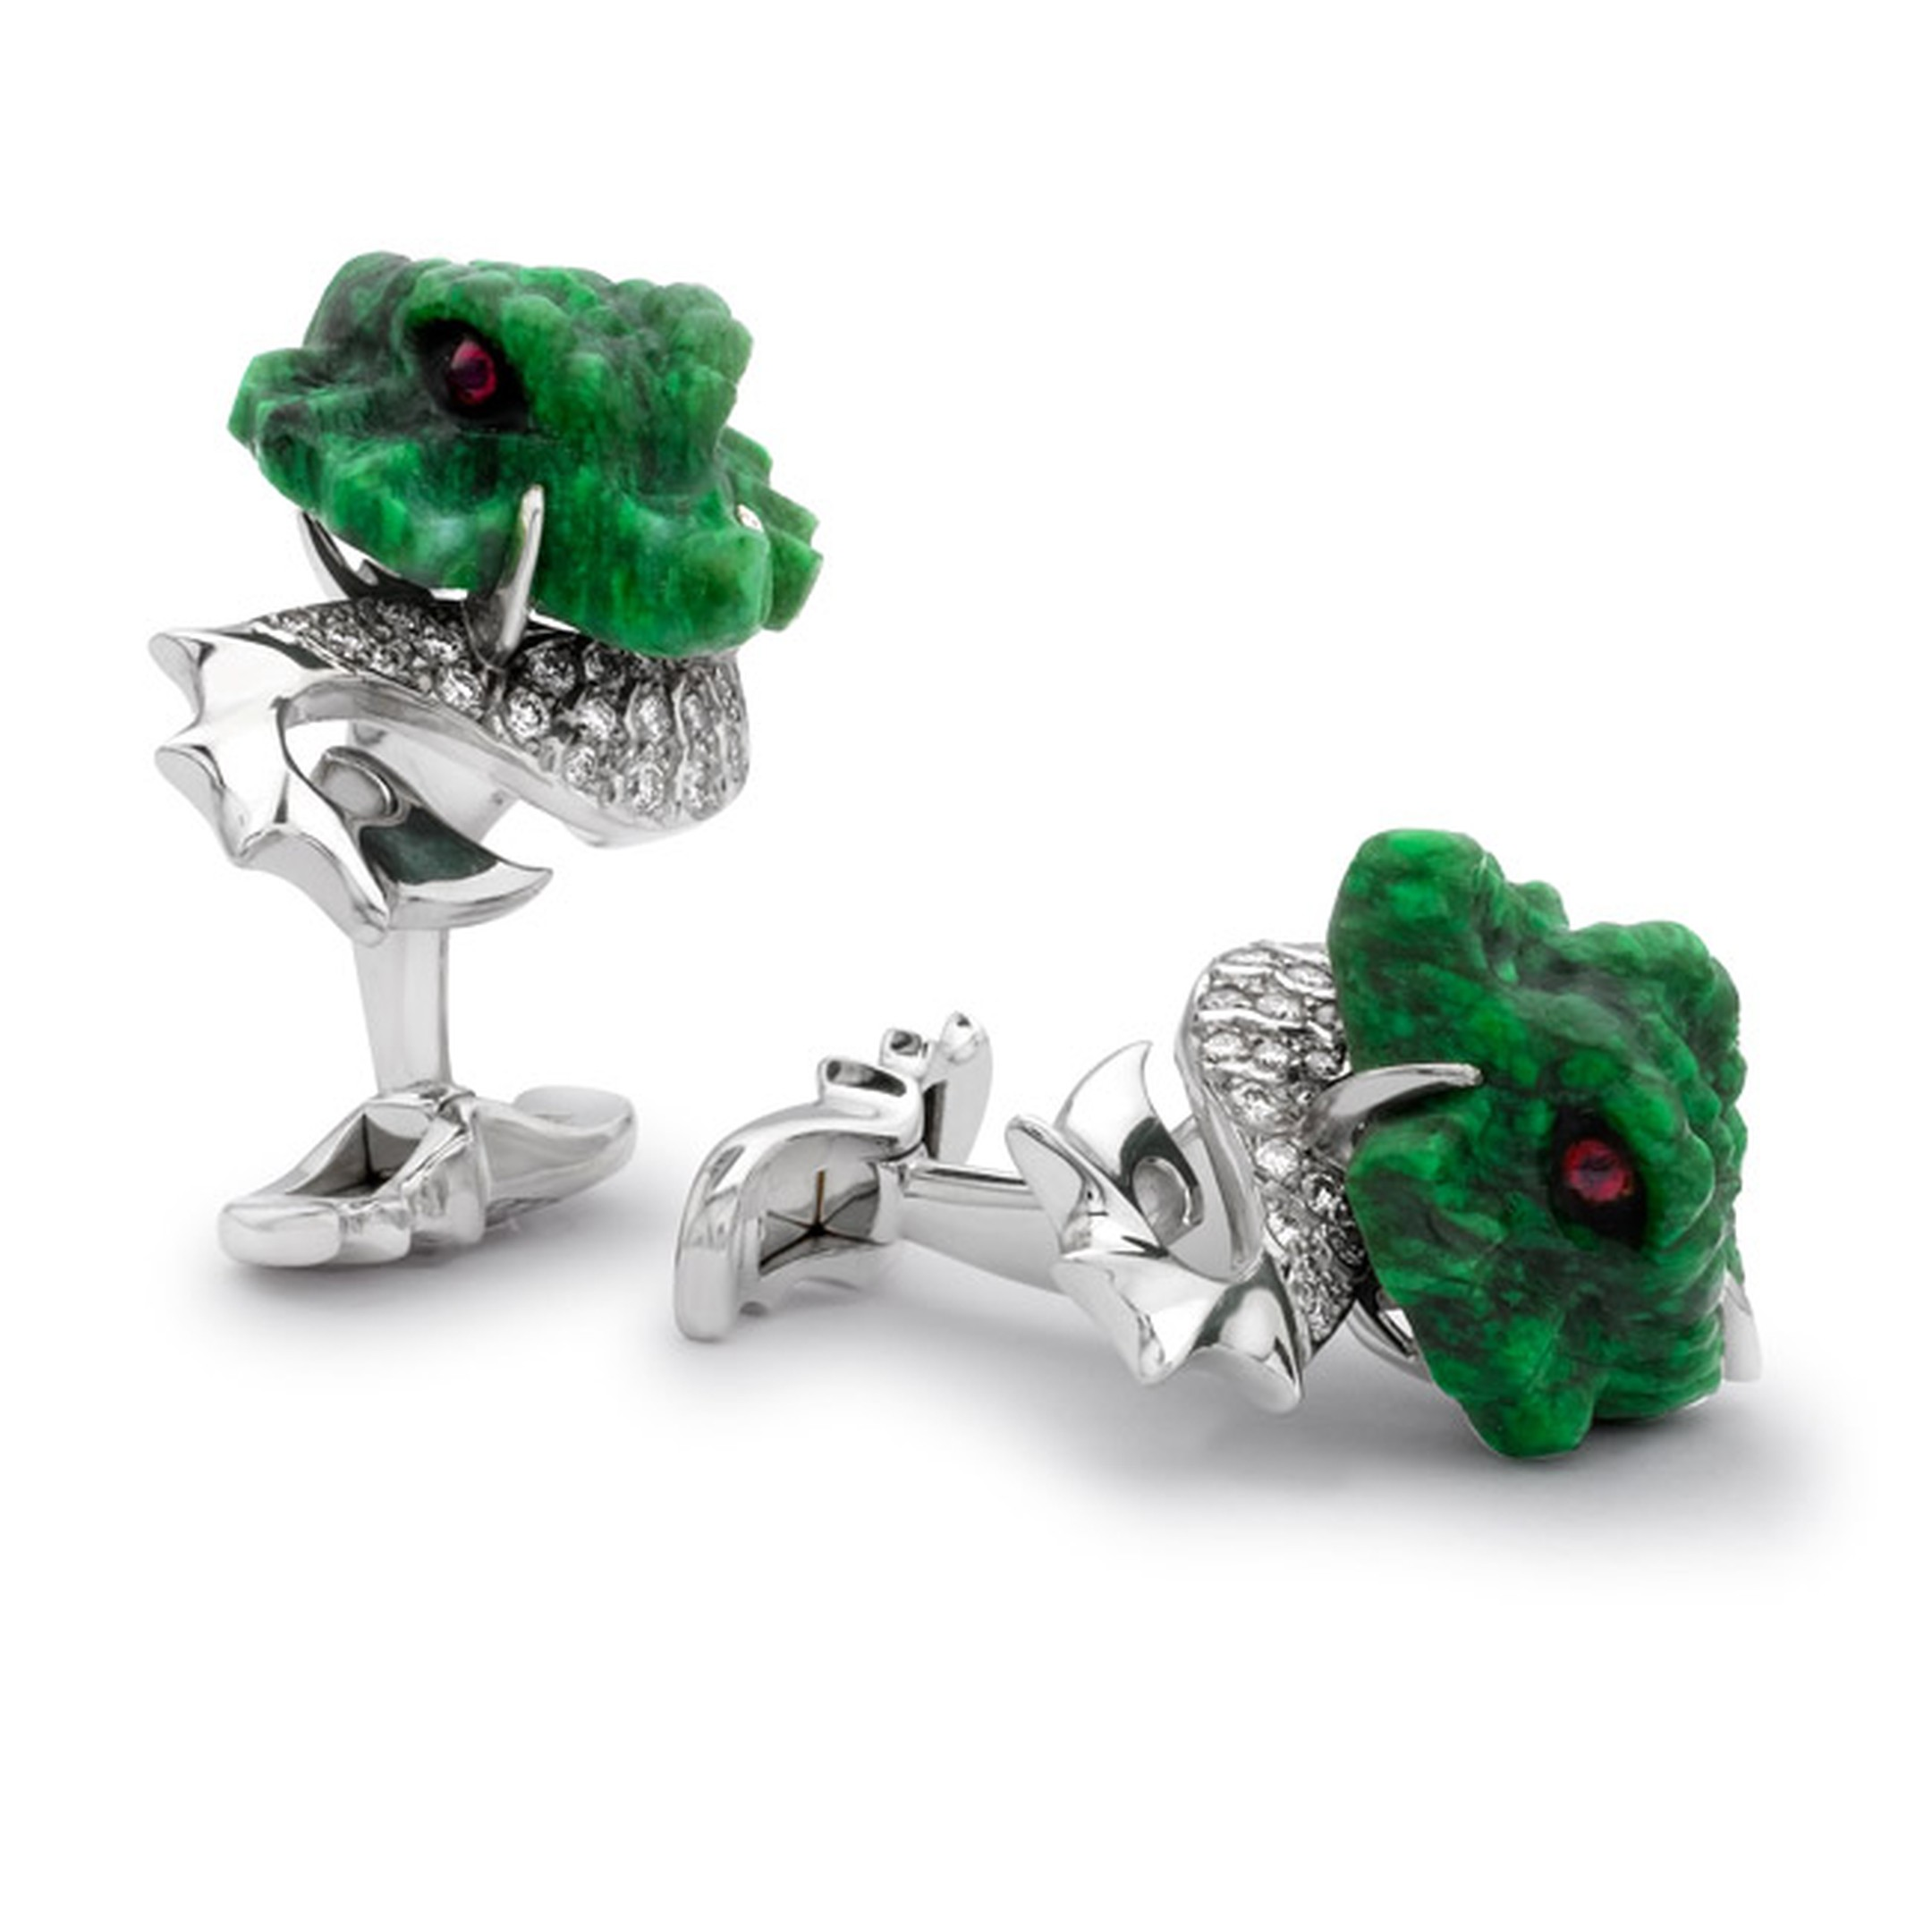 David-Marshall-Dragon-Cufflinks-Main